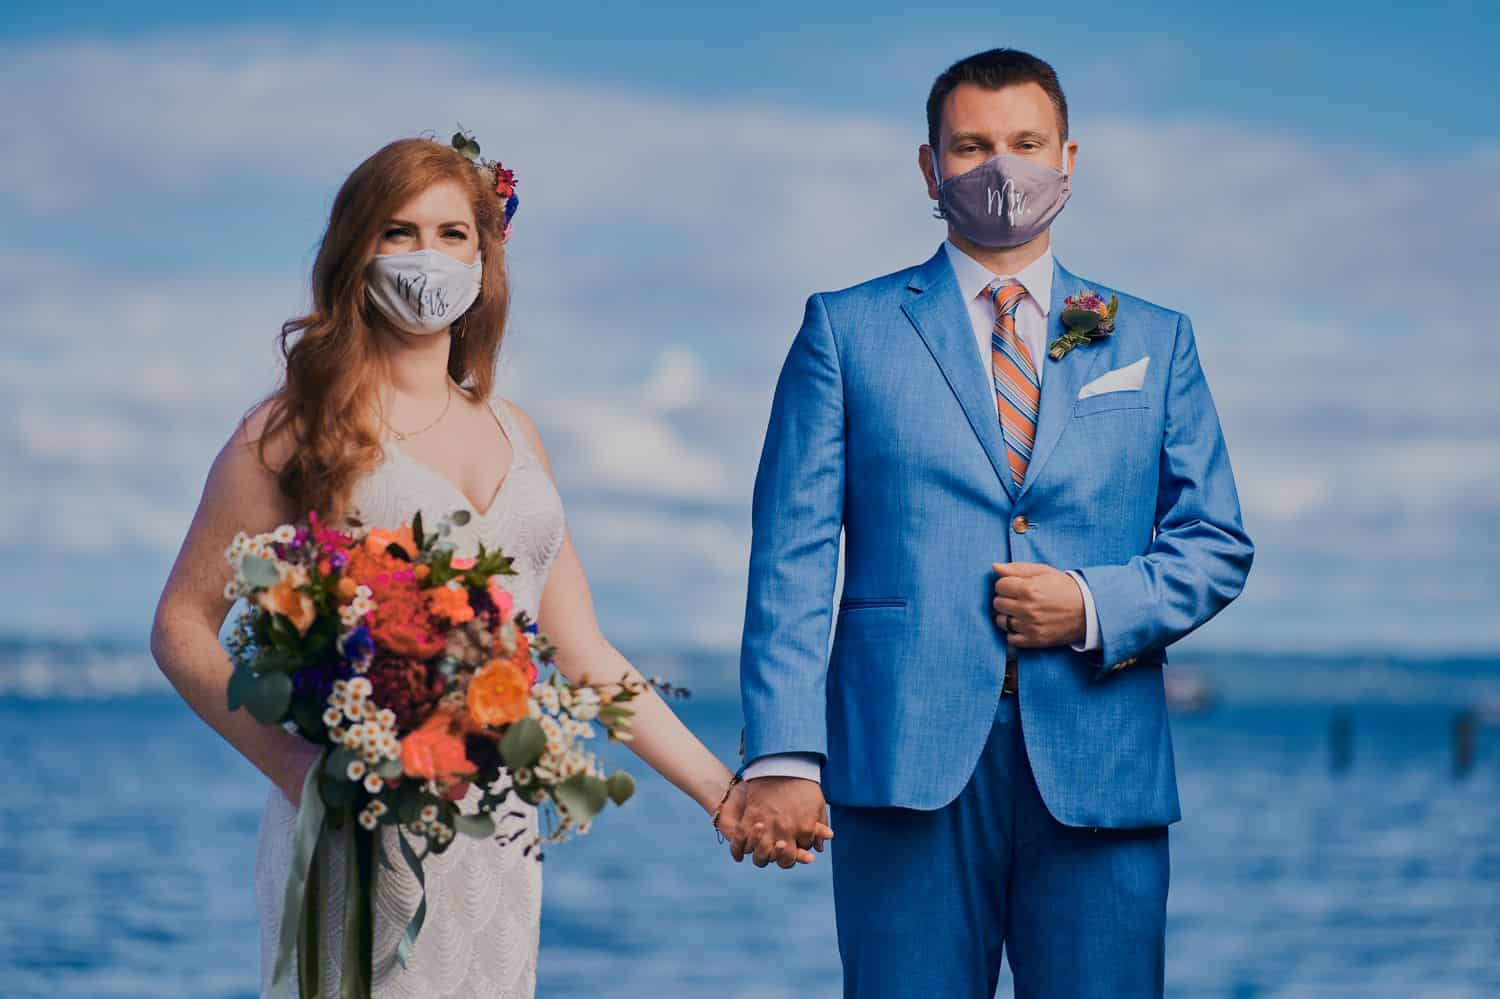 A bride and groom hold hands in front of the ocean with COVID-19 masks on their faces